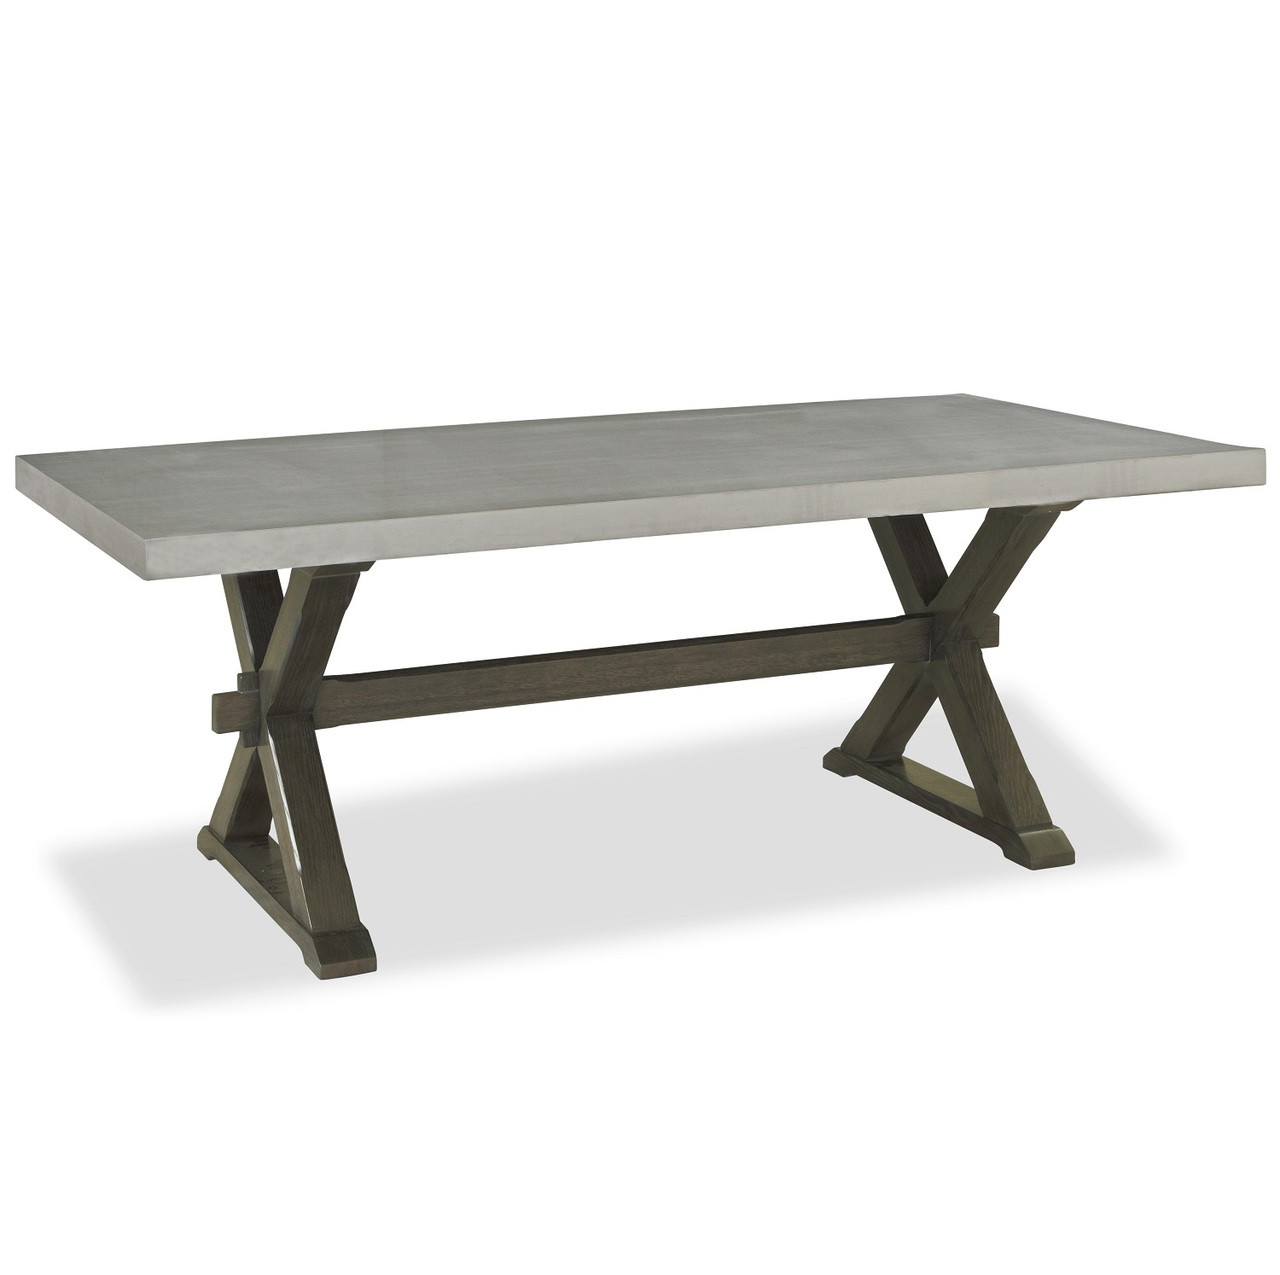 Flatiron oak wood stainless steel x base dining table for Dining table base